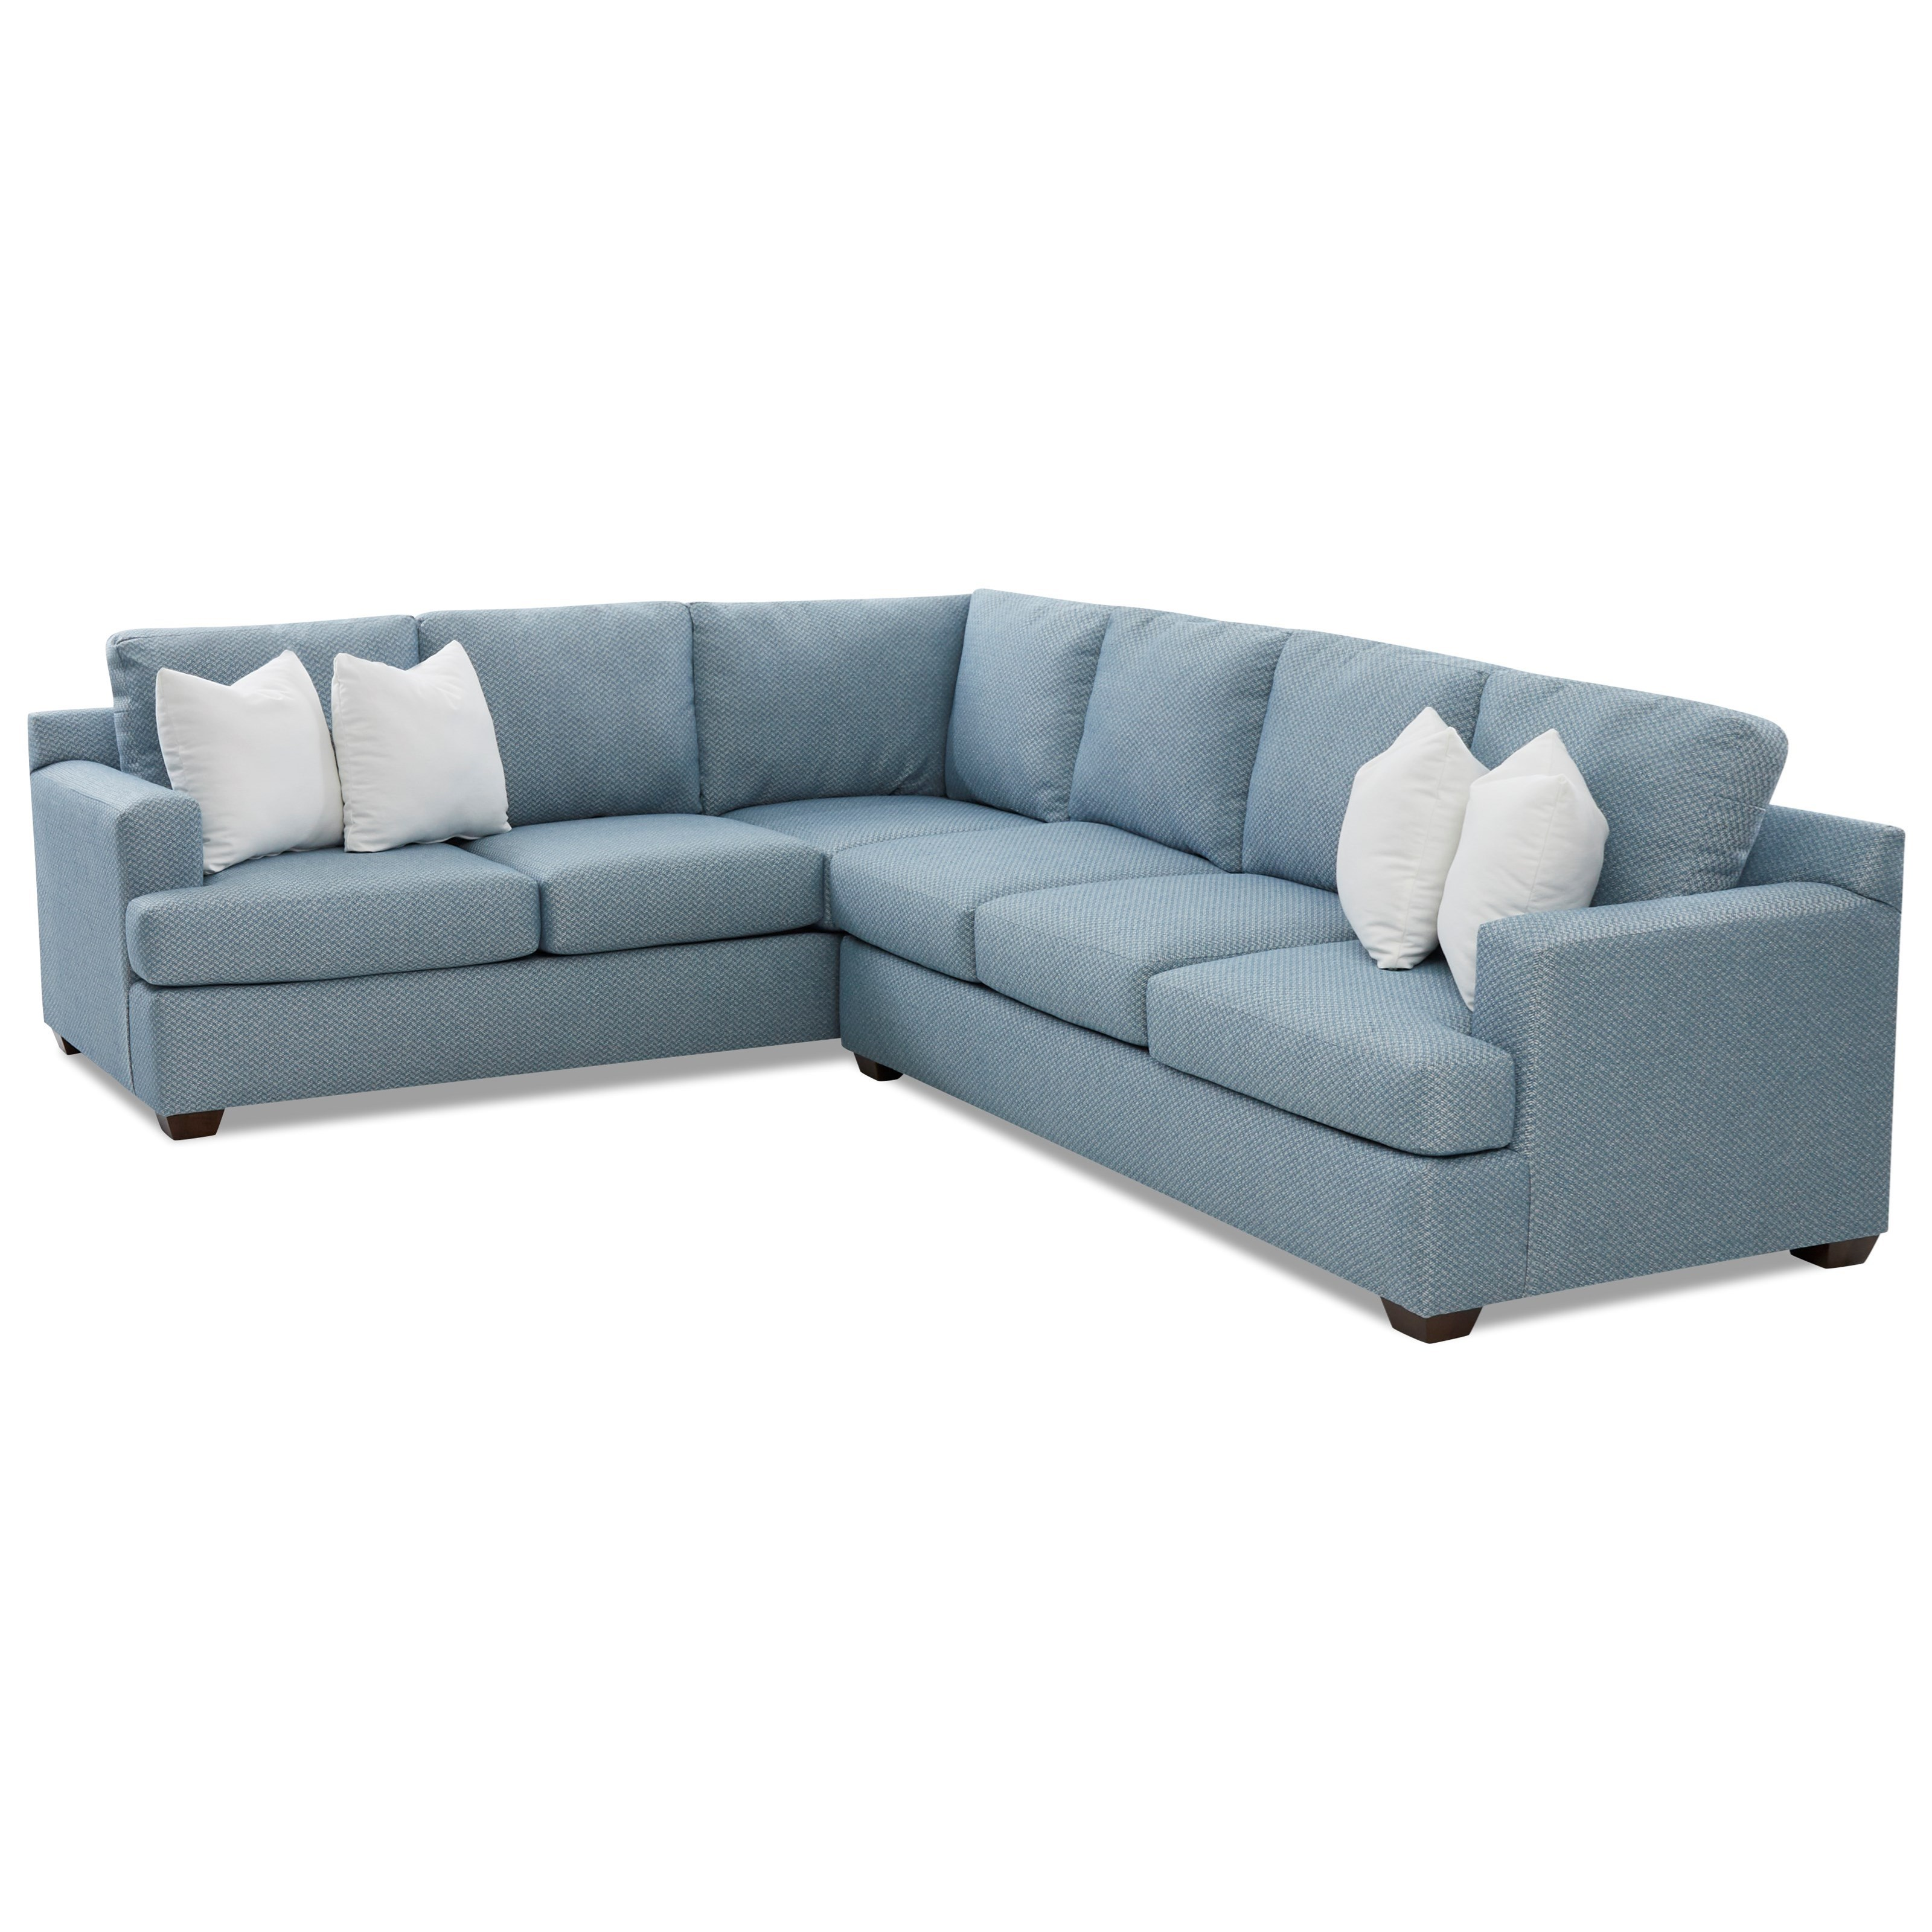 Juniper 5-Seat Sectional Sofa with LAF Corner by Klaussner at Johnny Janosik